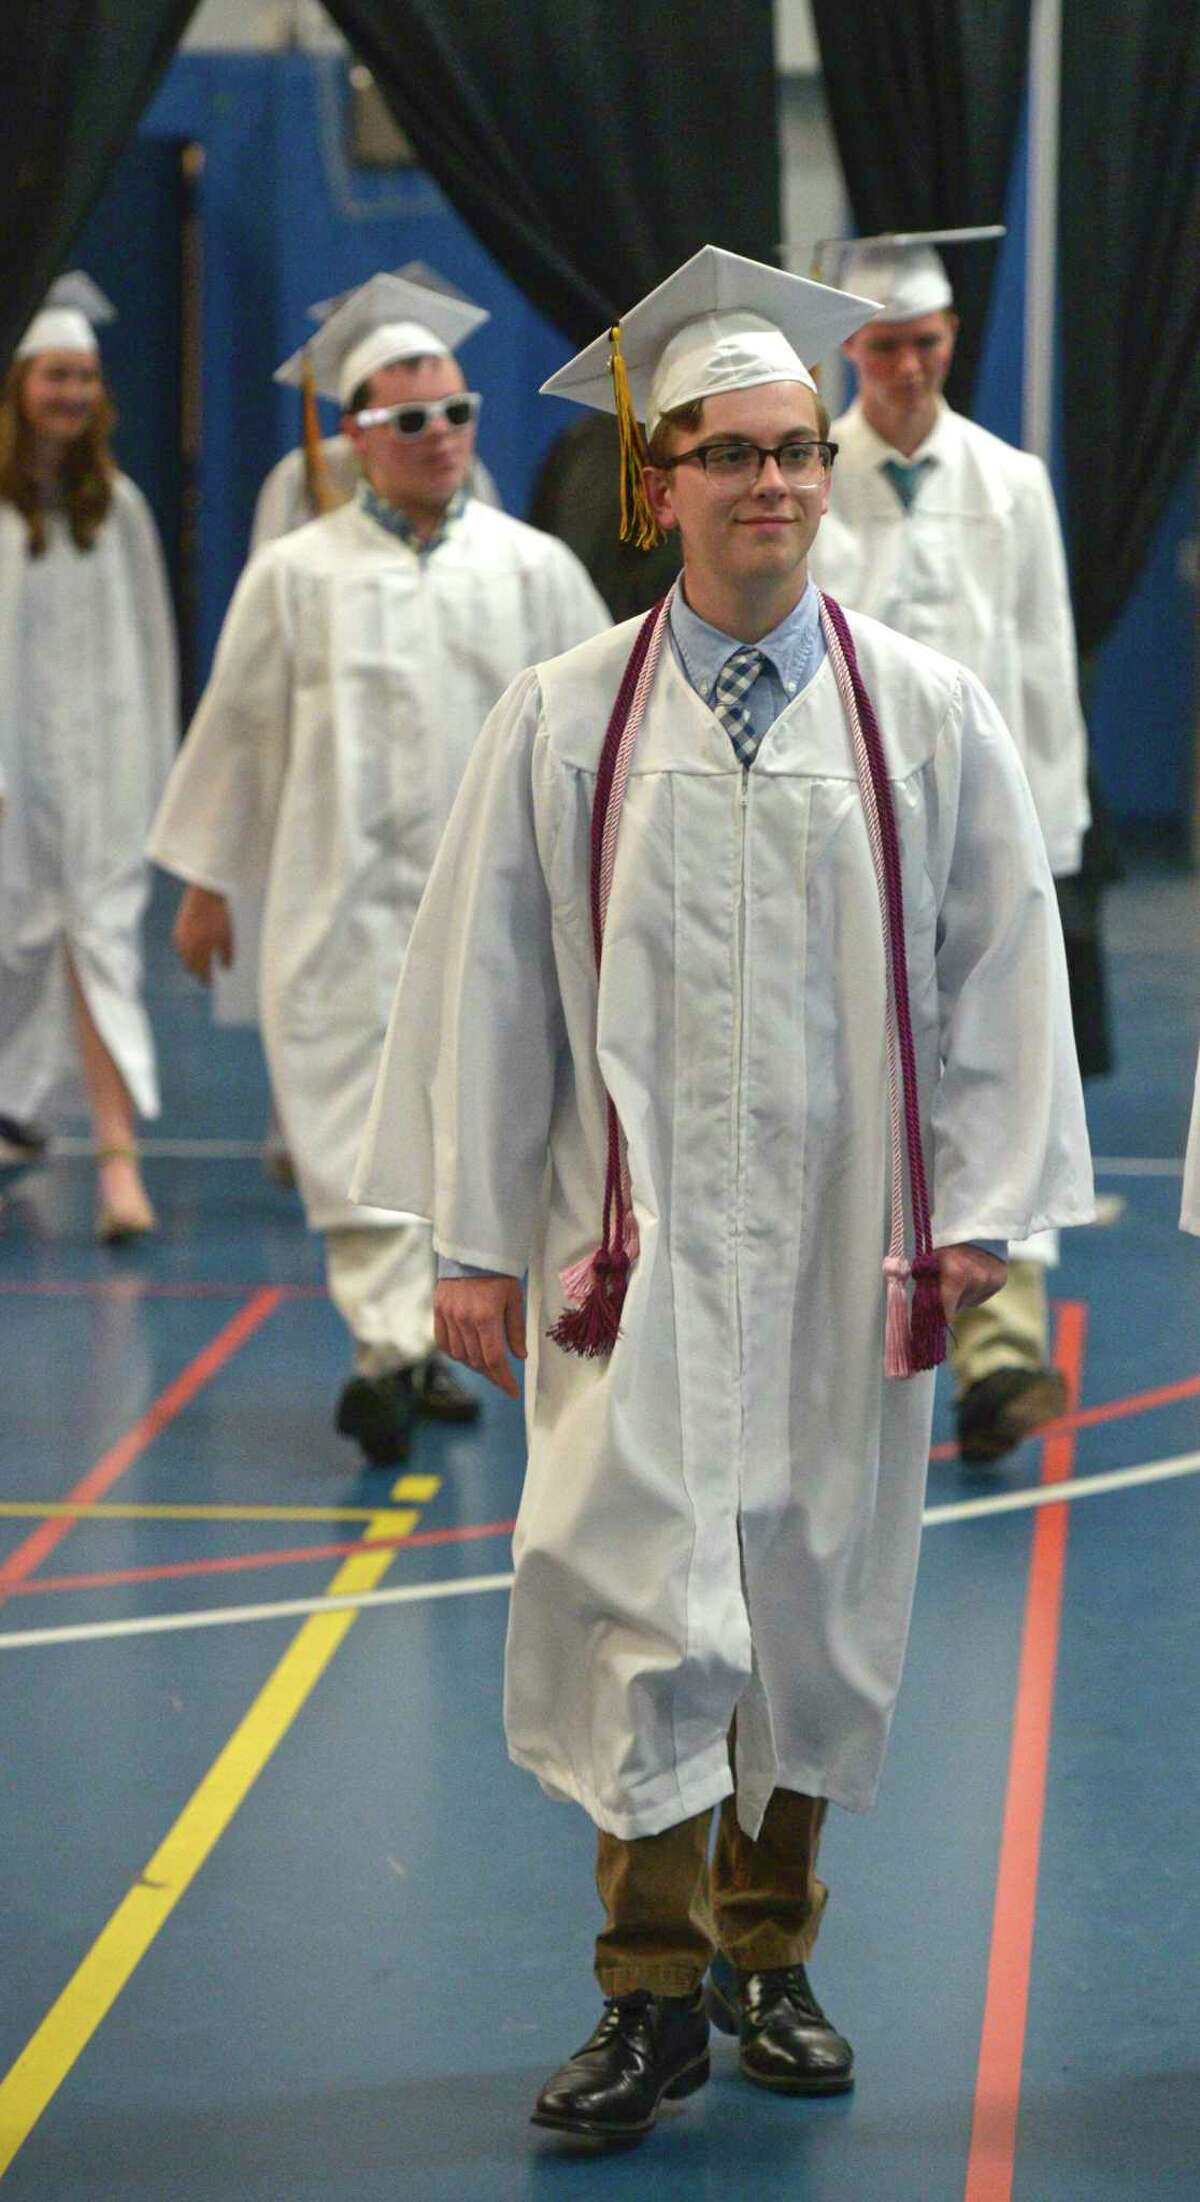 Joel Barlow High School 2019 Commencement Ceremony, Wednesday June 12, 2019, at The O'Neill Center at Western Connecticut State University, Danbury, Conn.